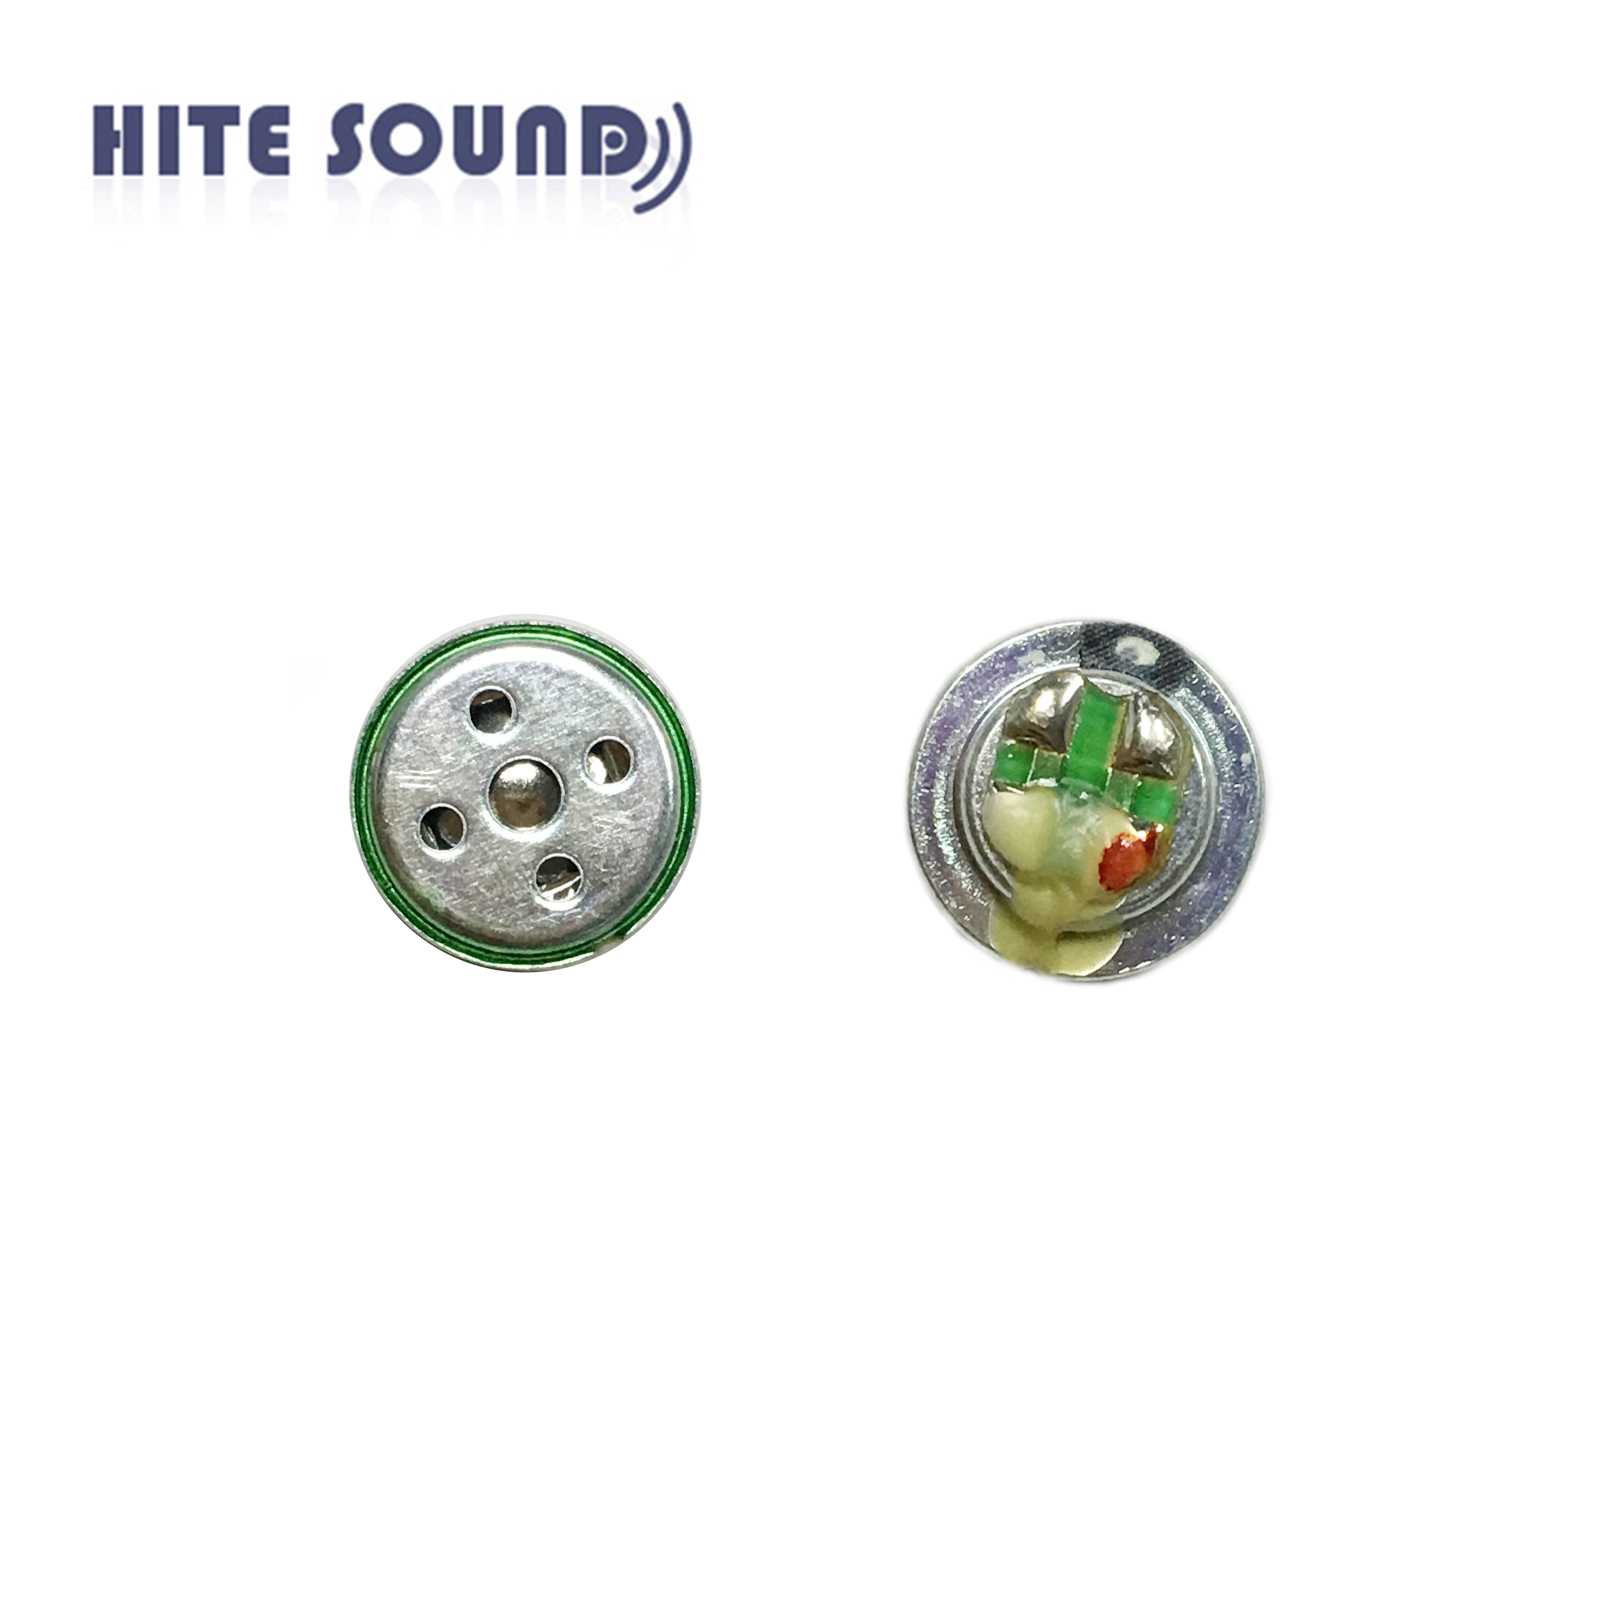 10mm Sound Be Clear Bright Titanium Speaker For Earphones